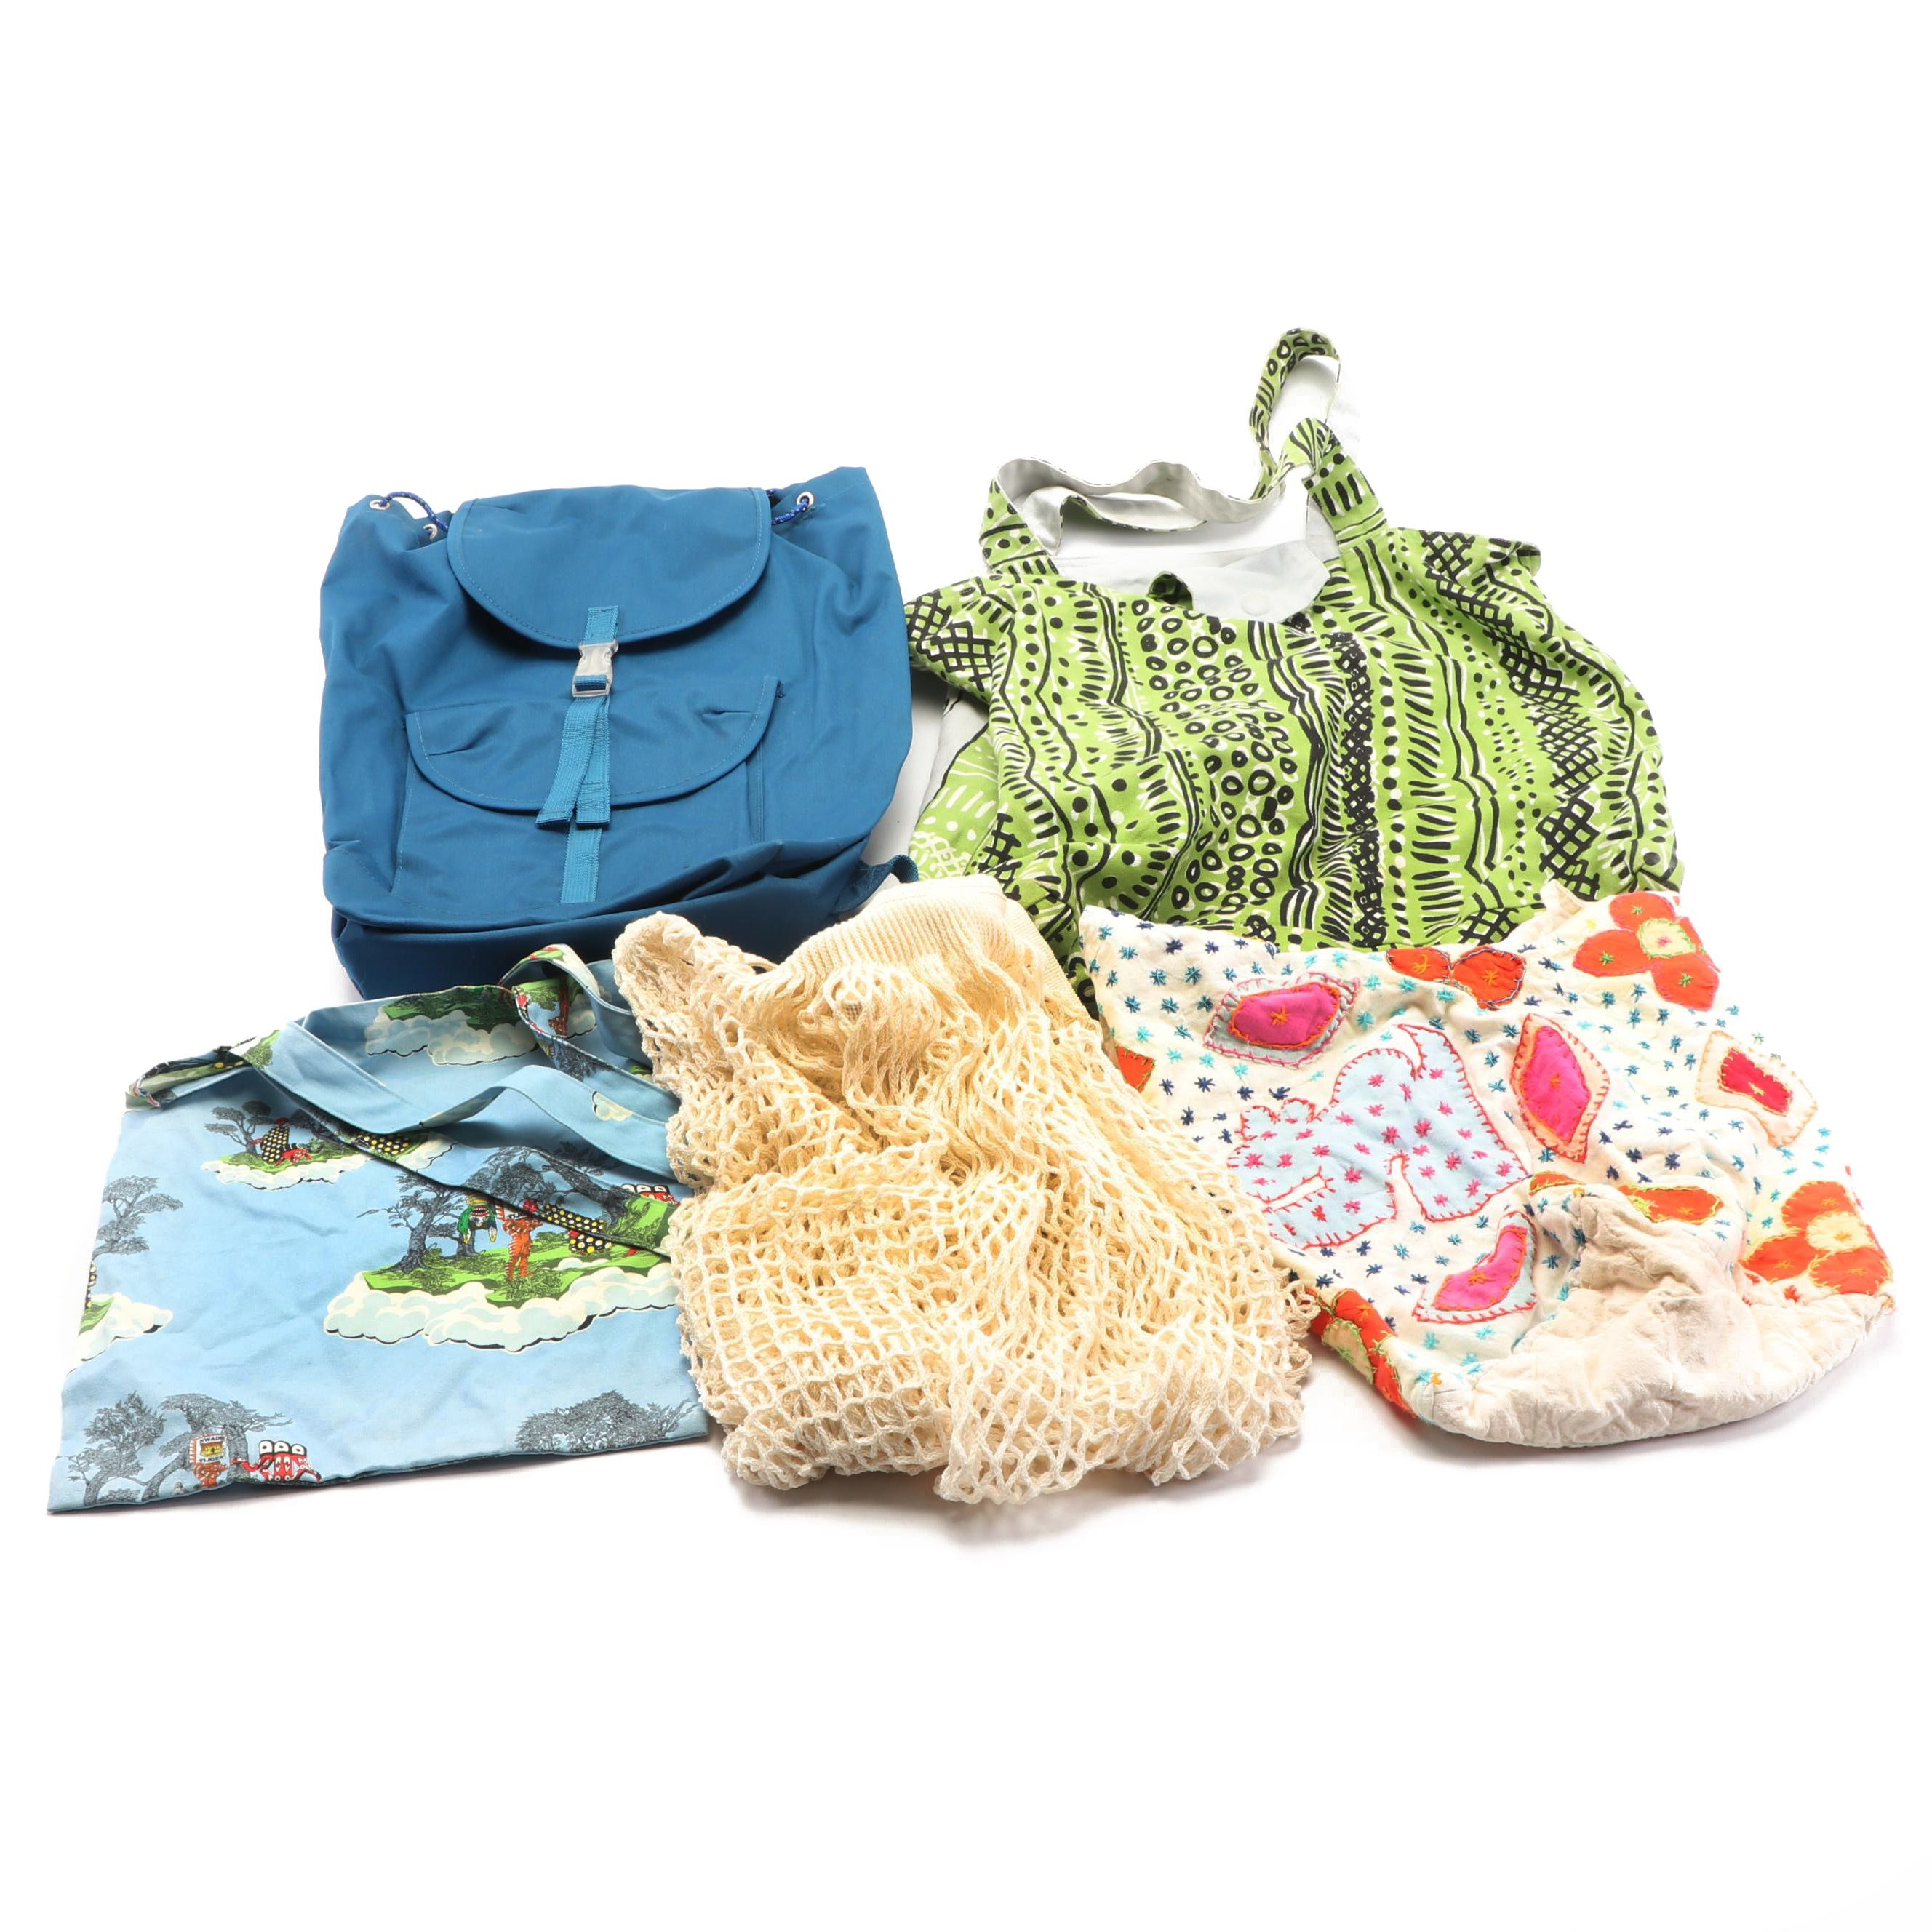 Baggu Canvas Backpack, Patterned Cloth Totes and Fit Mesh Bag